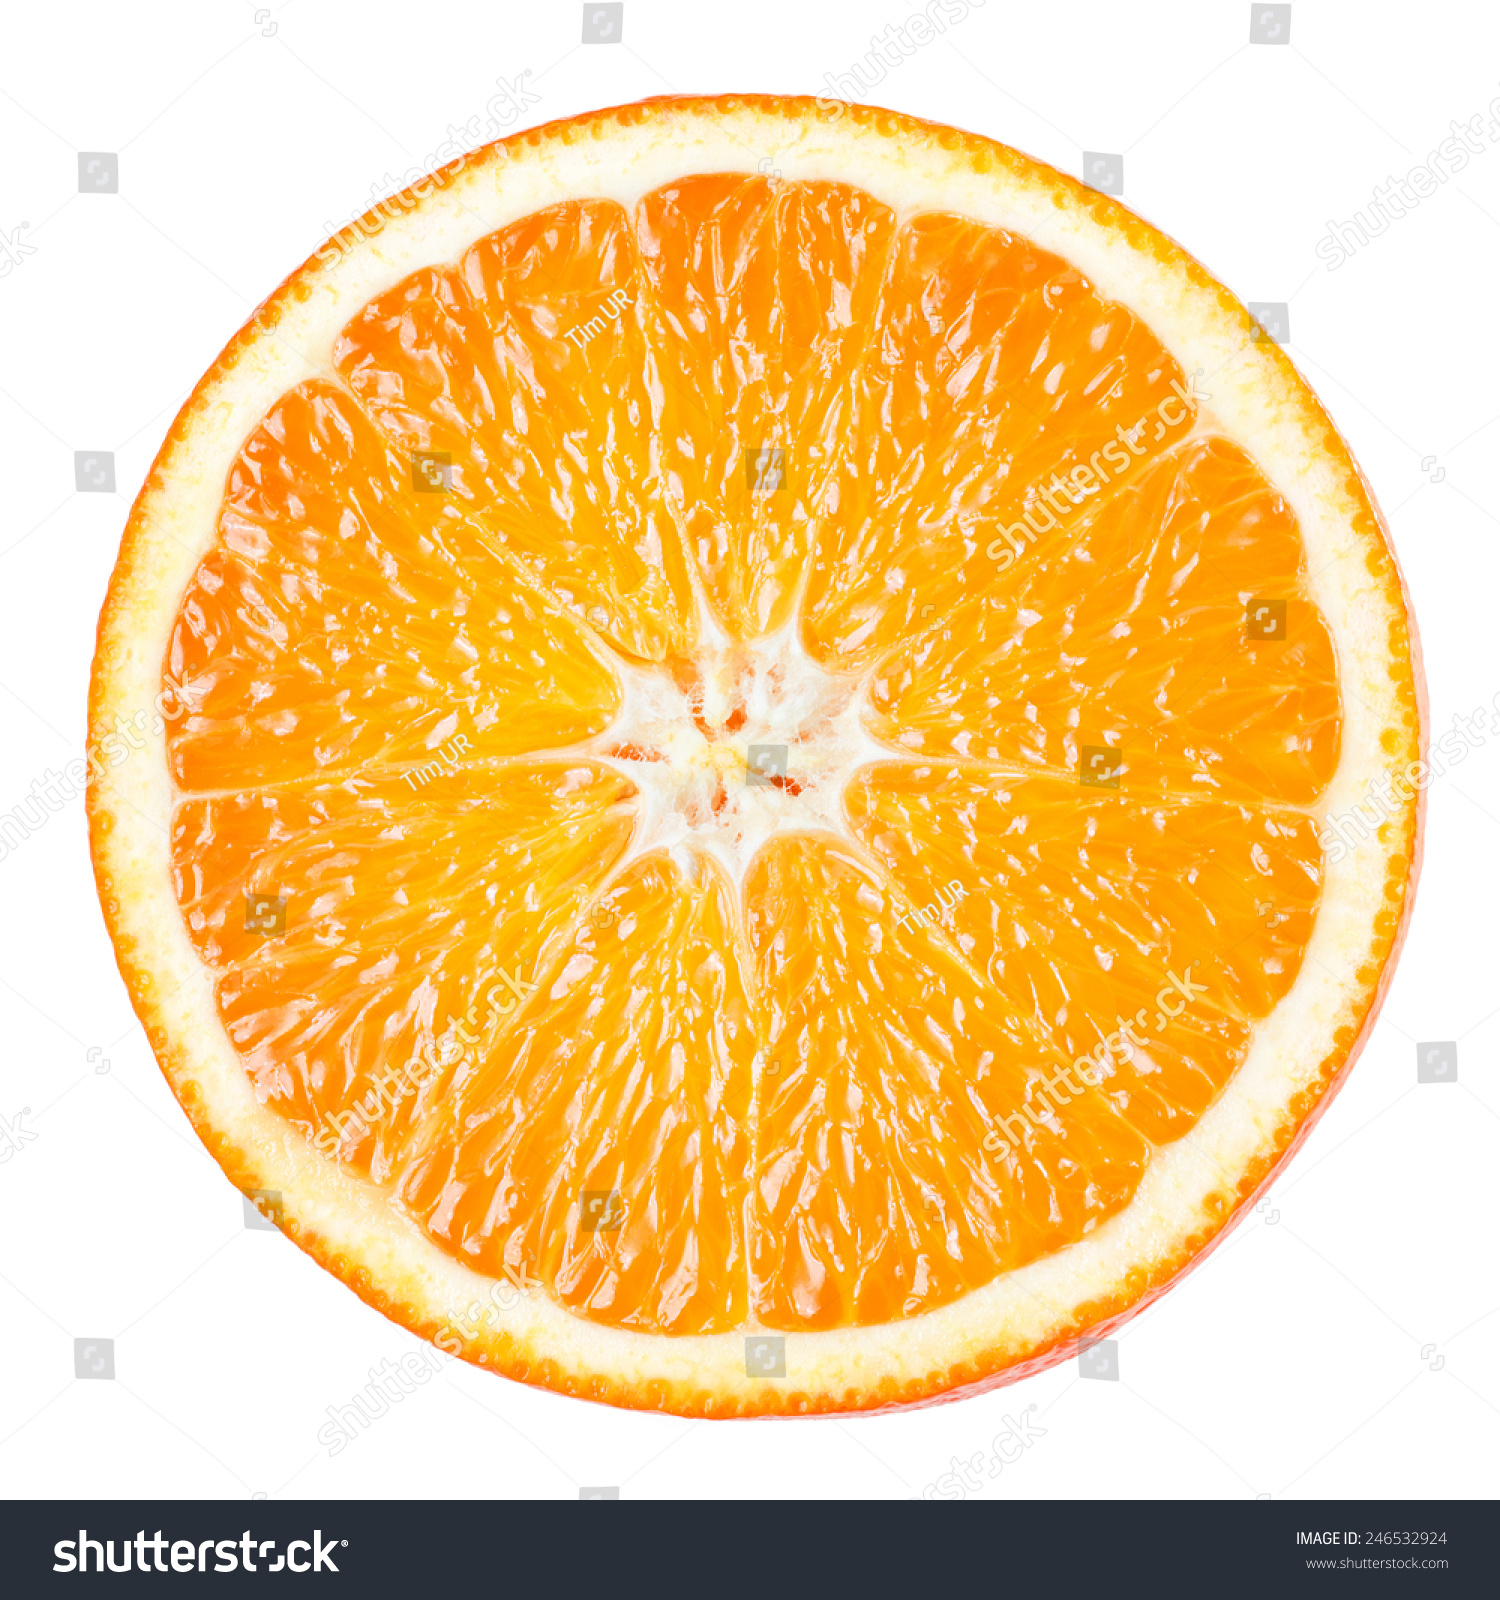 Orange Slice Isolated On White Background Stock Photo 246532924 ...